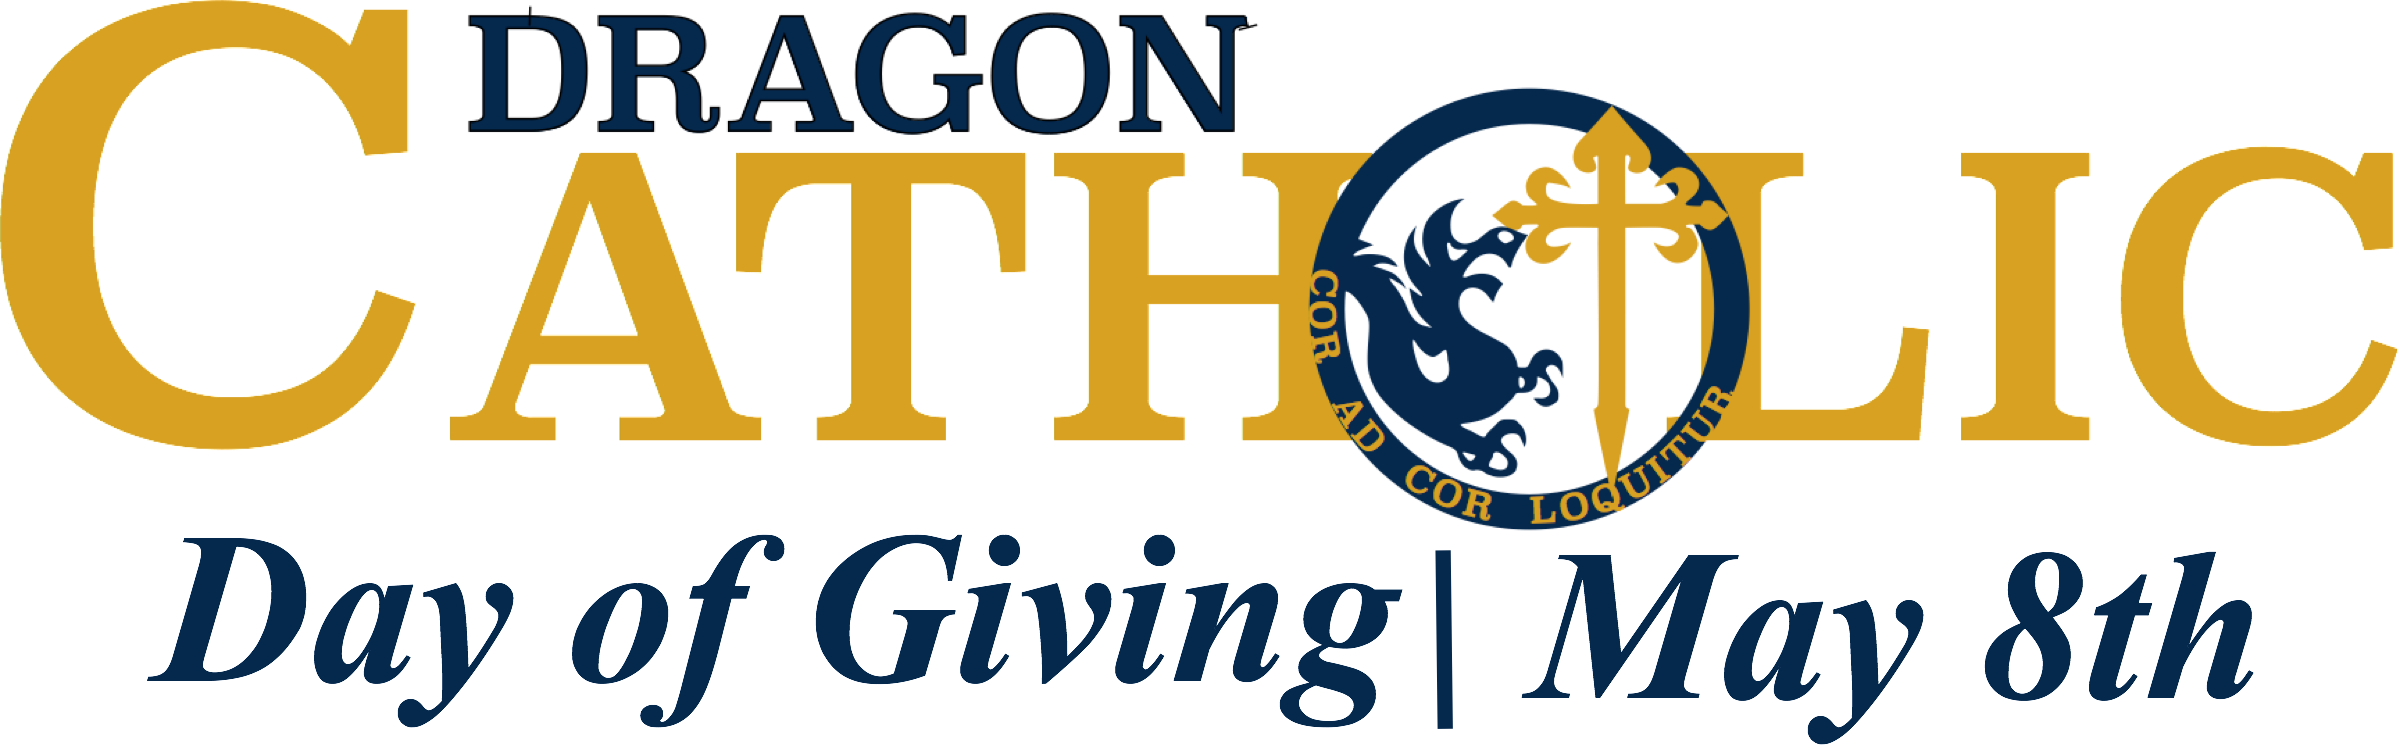 dc dragon catholic day of giving.png